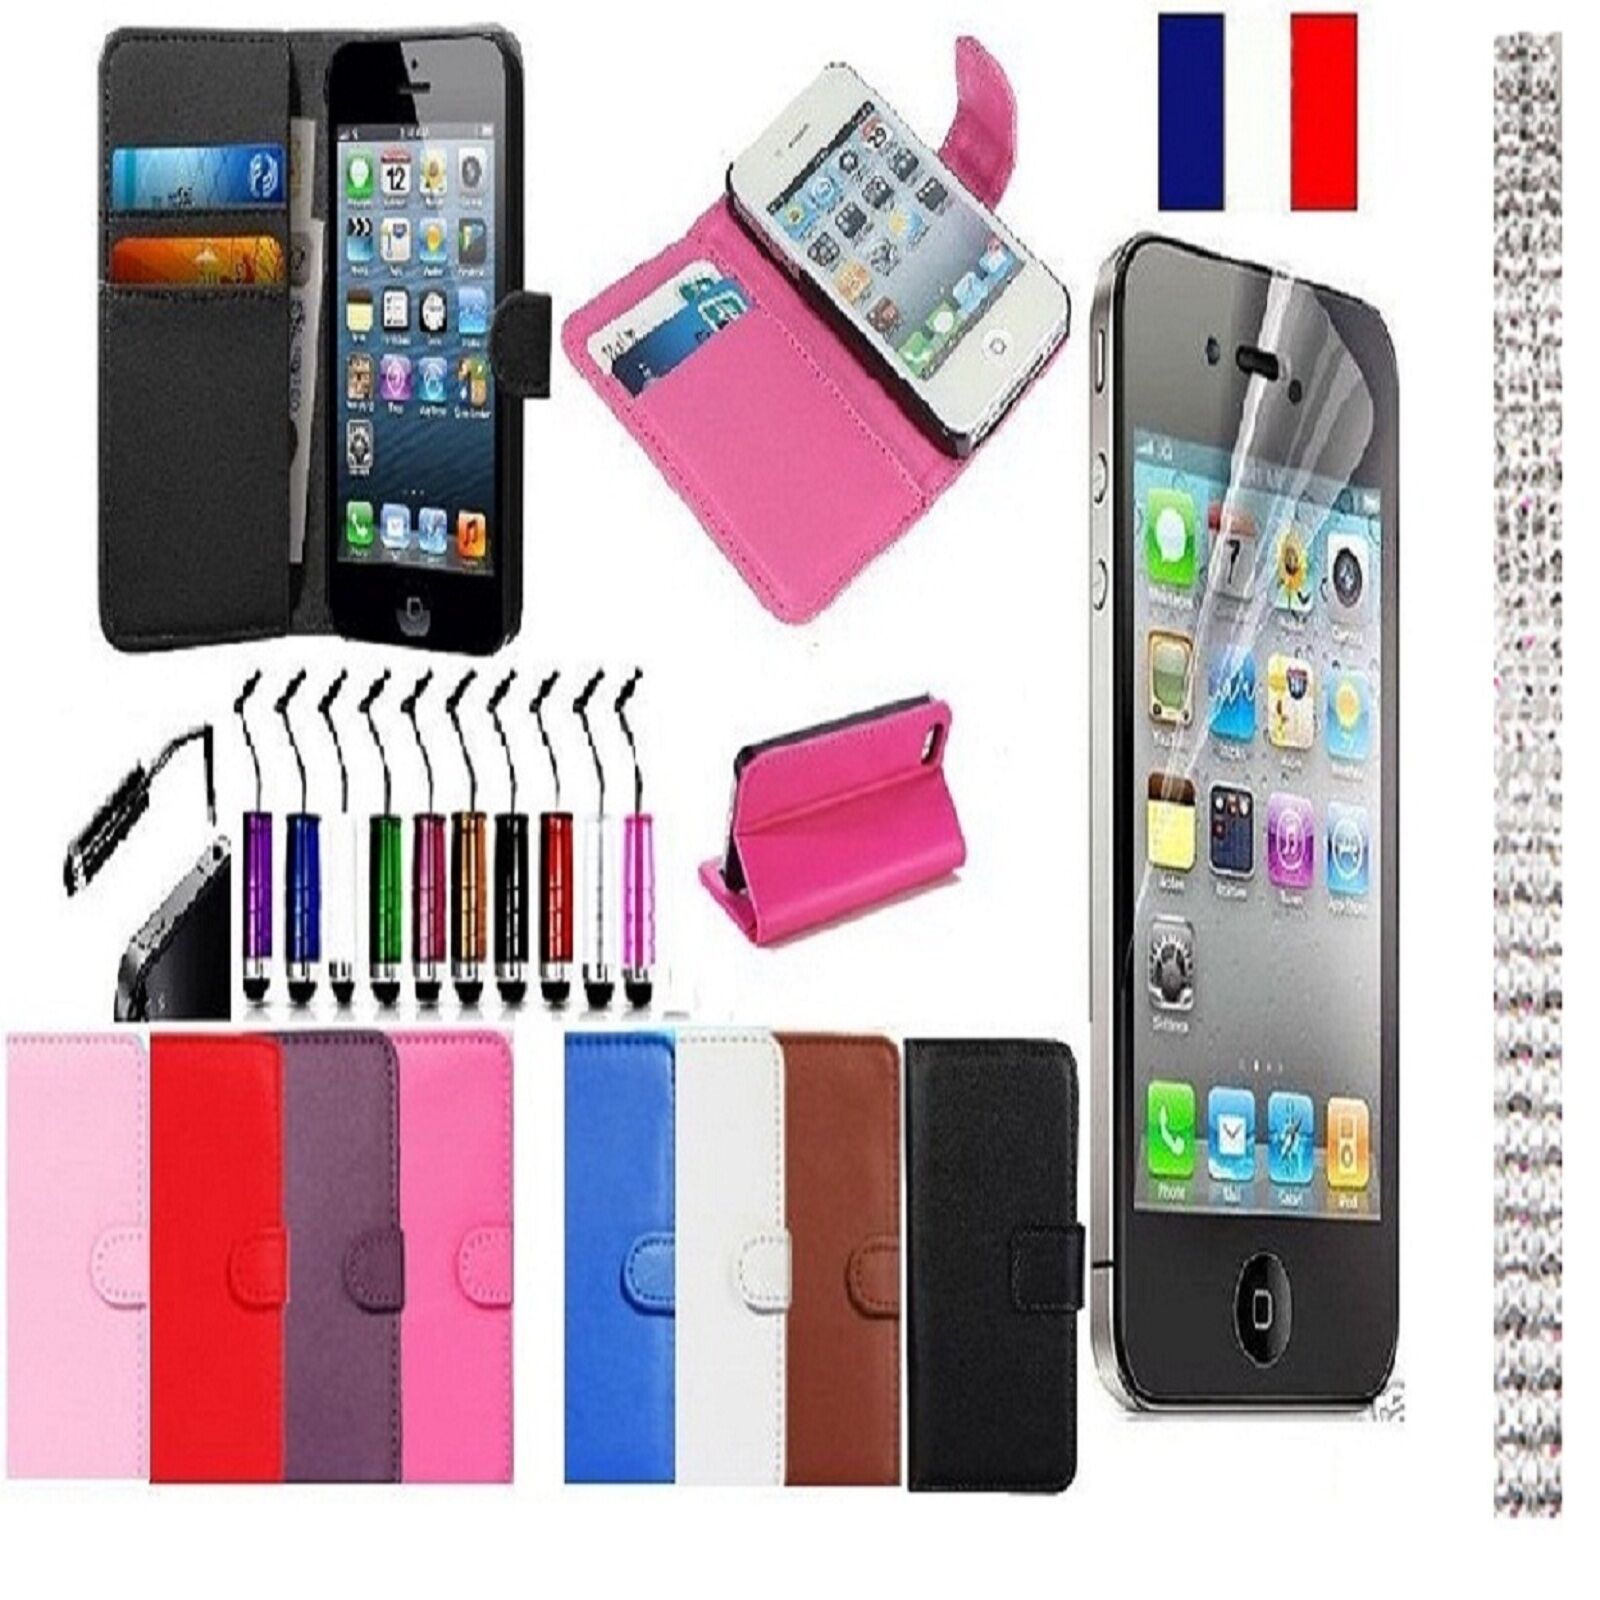 Etui coque housse iphone 4 4s ou 5 5s cuir carte credit for Housse cuir iphone 4